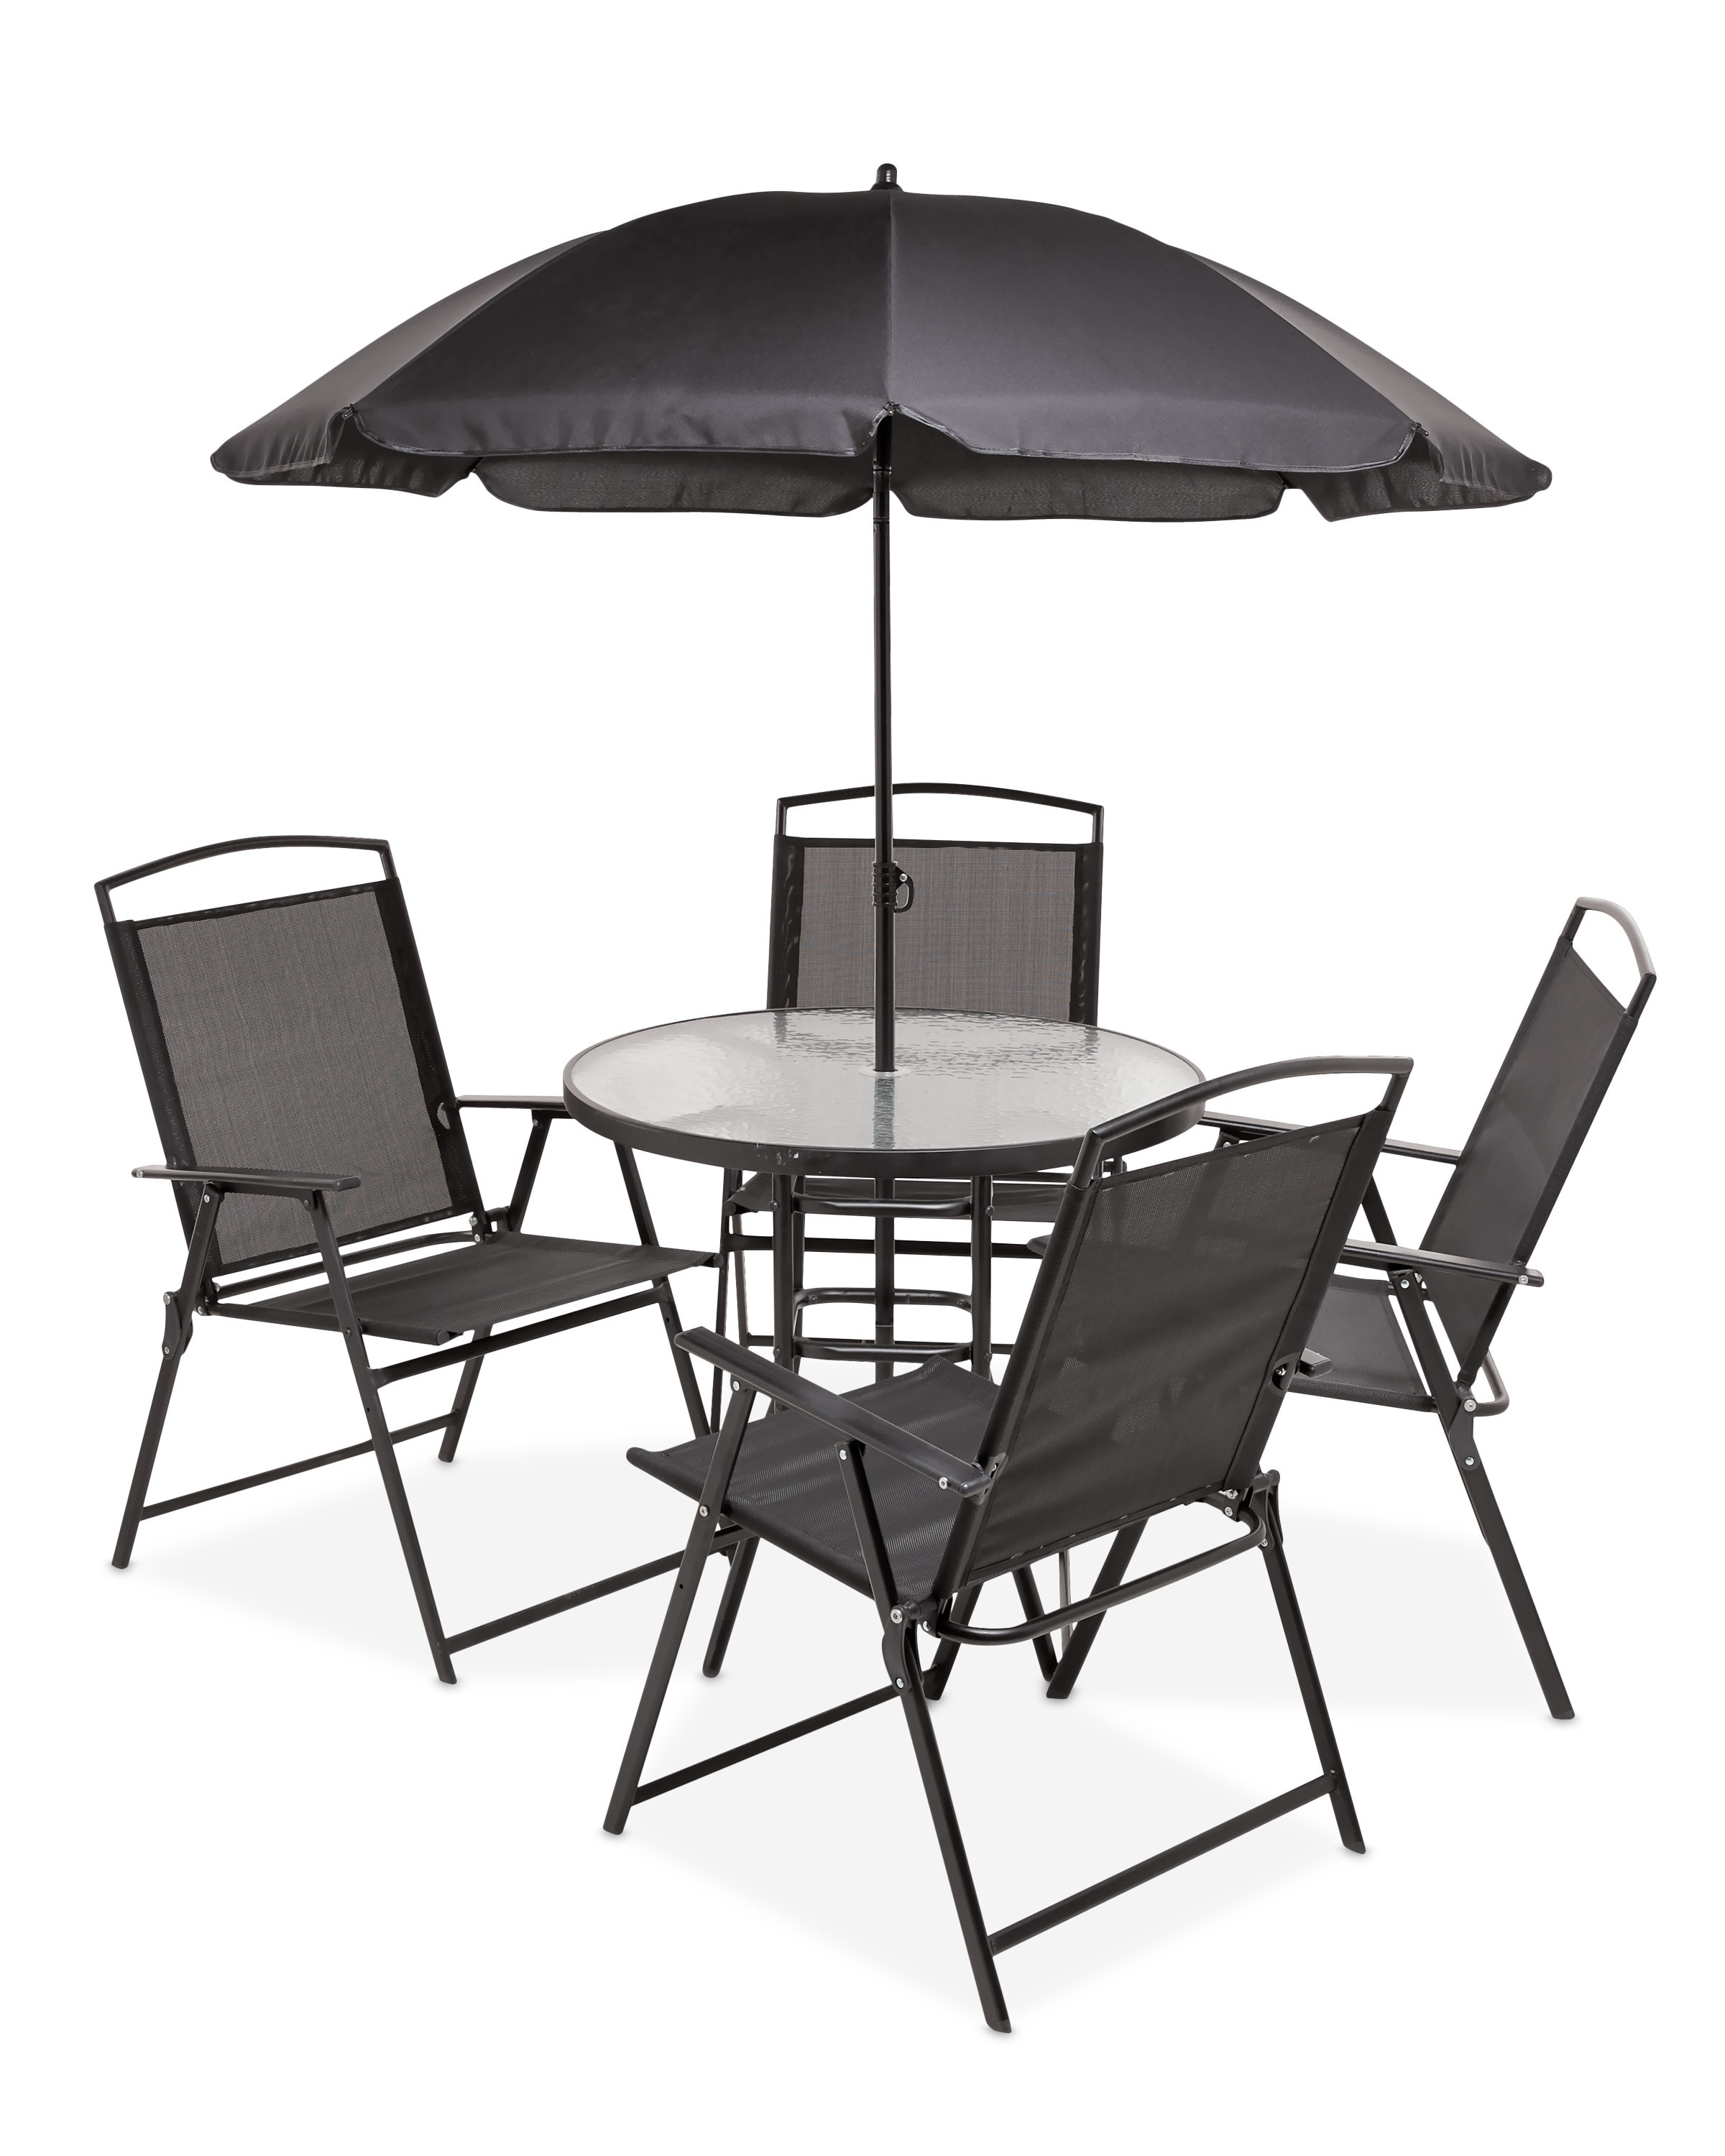 6 piece garden furniture set aldi uk